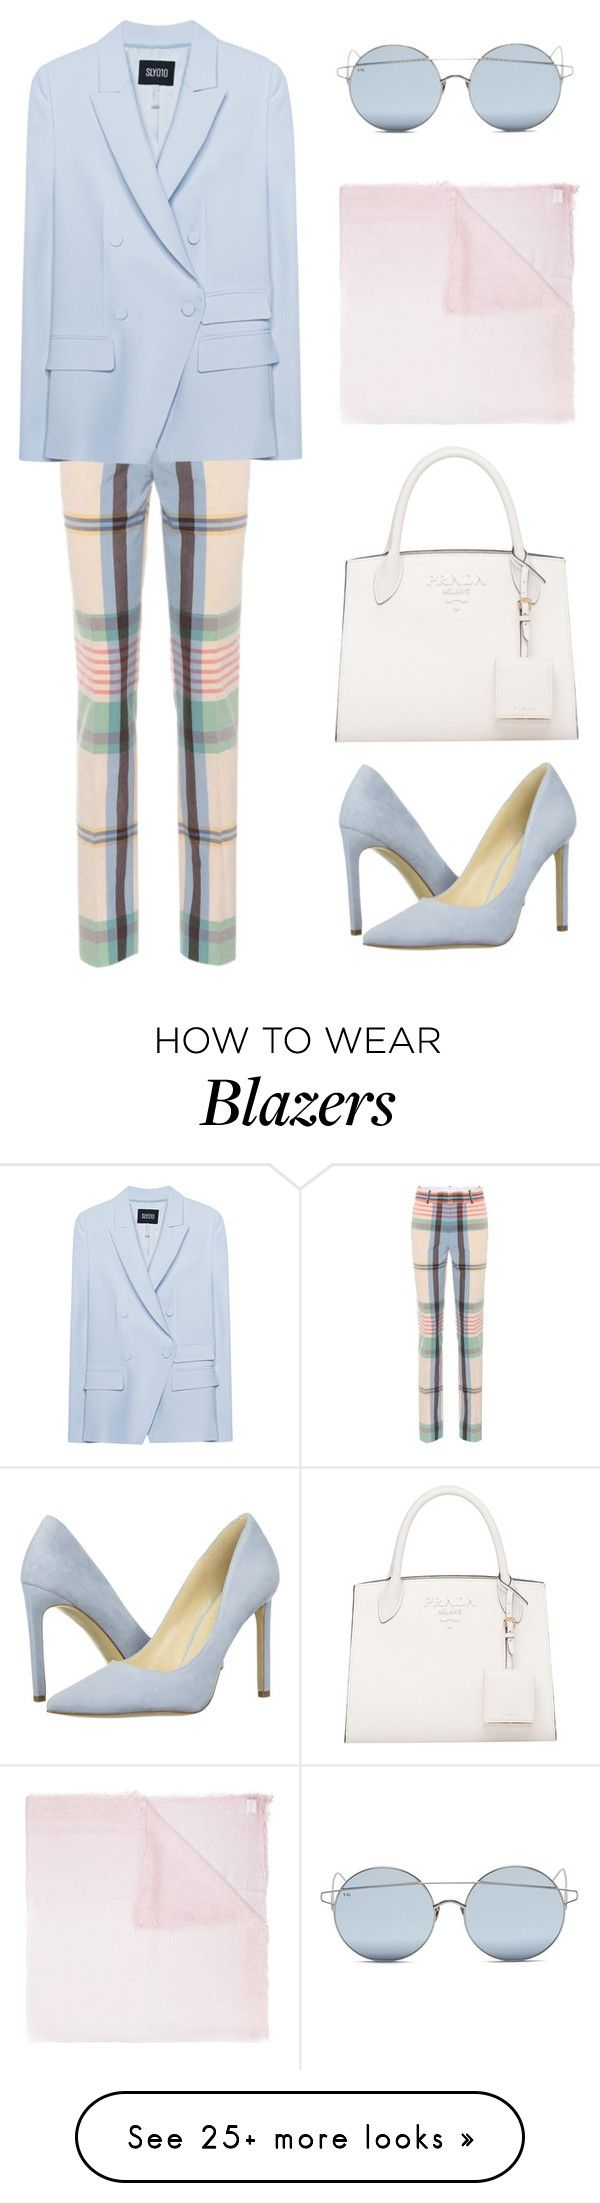 """""""Untitled #668"""" by rebecky89 on Polyvore featuring For Art's Sake, Victoria Beckham, SLY 010, Nine West and Faliero Sarti"""